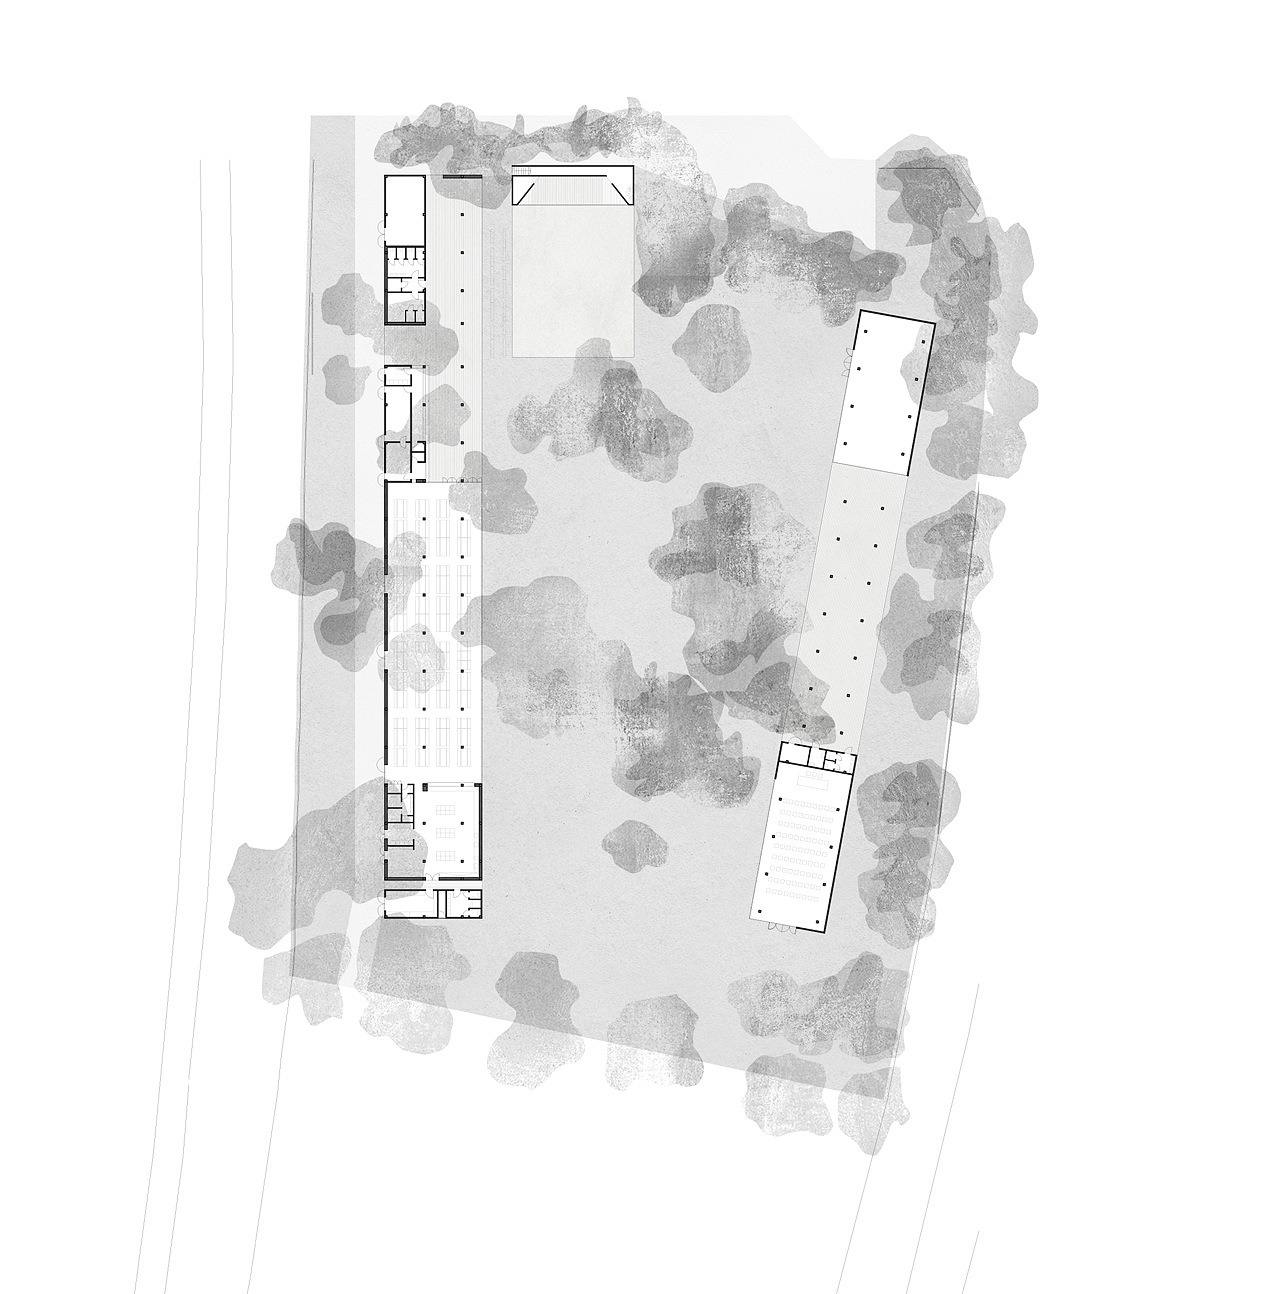 2014_Parco-Sughere-Plan_200_1280